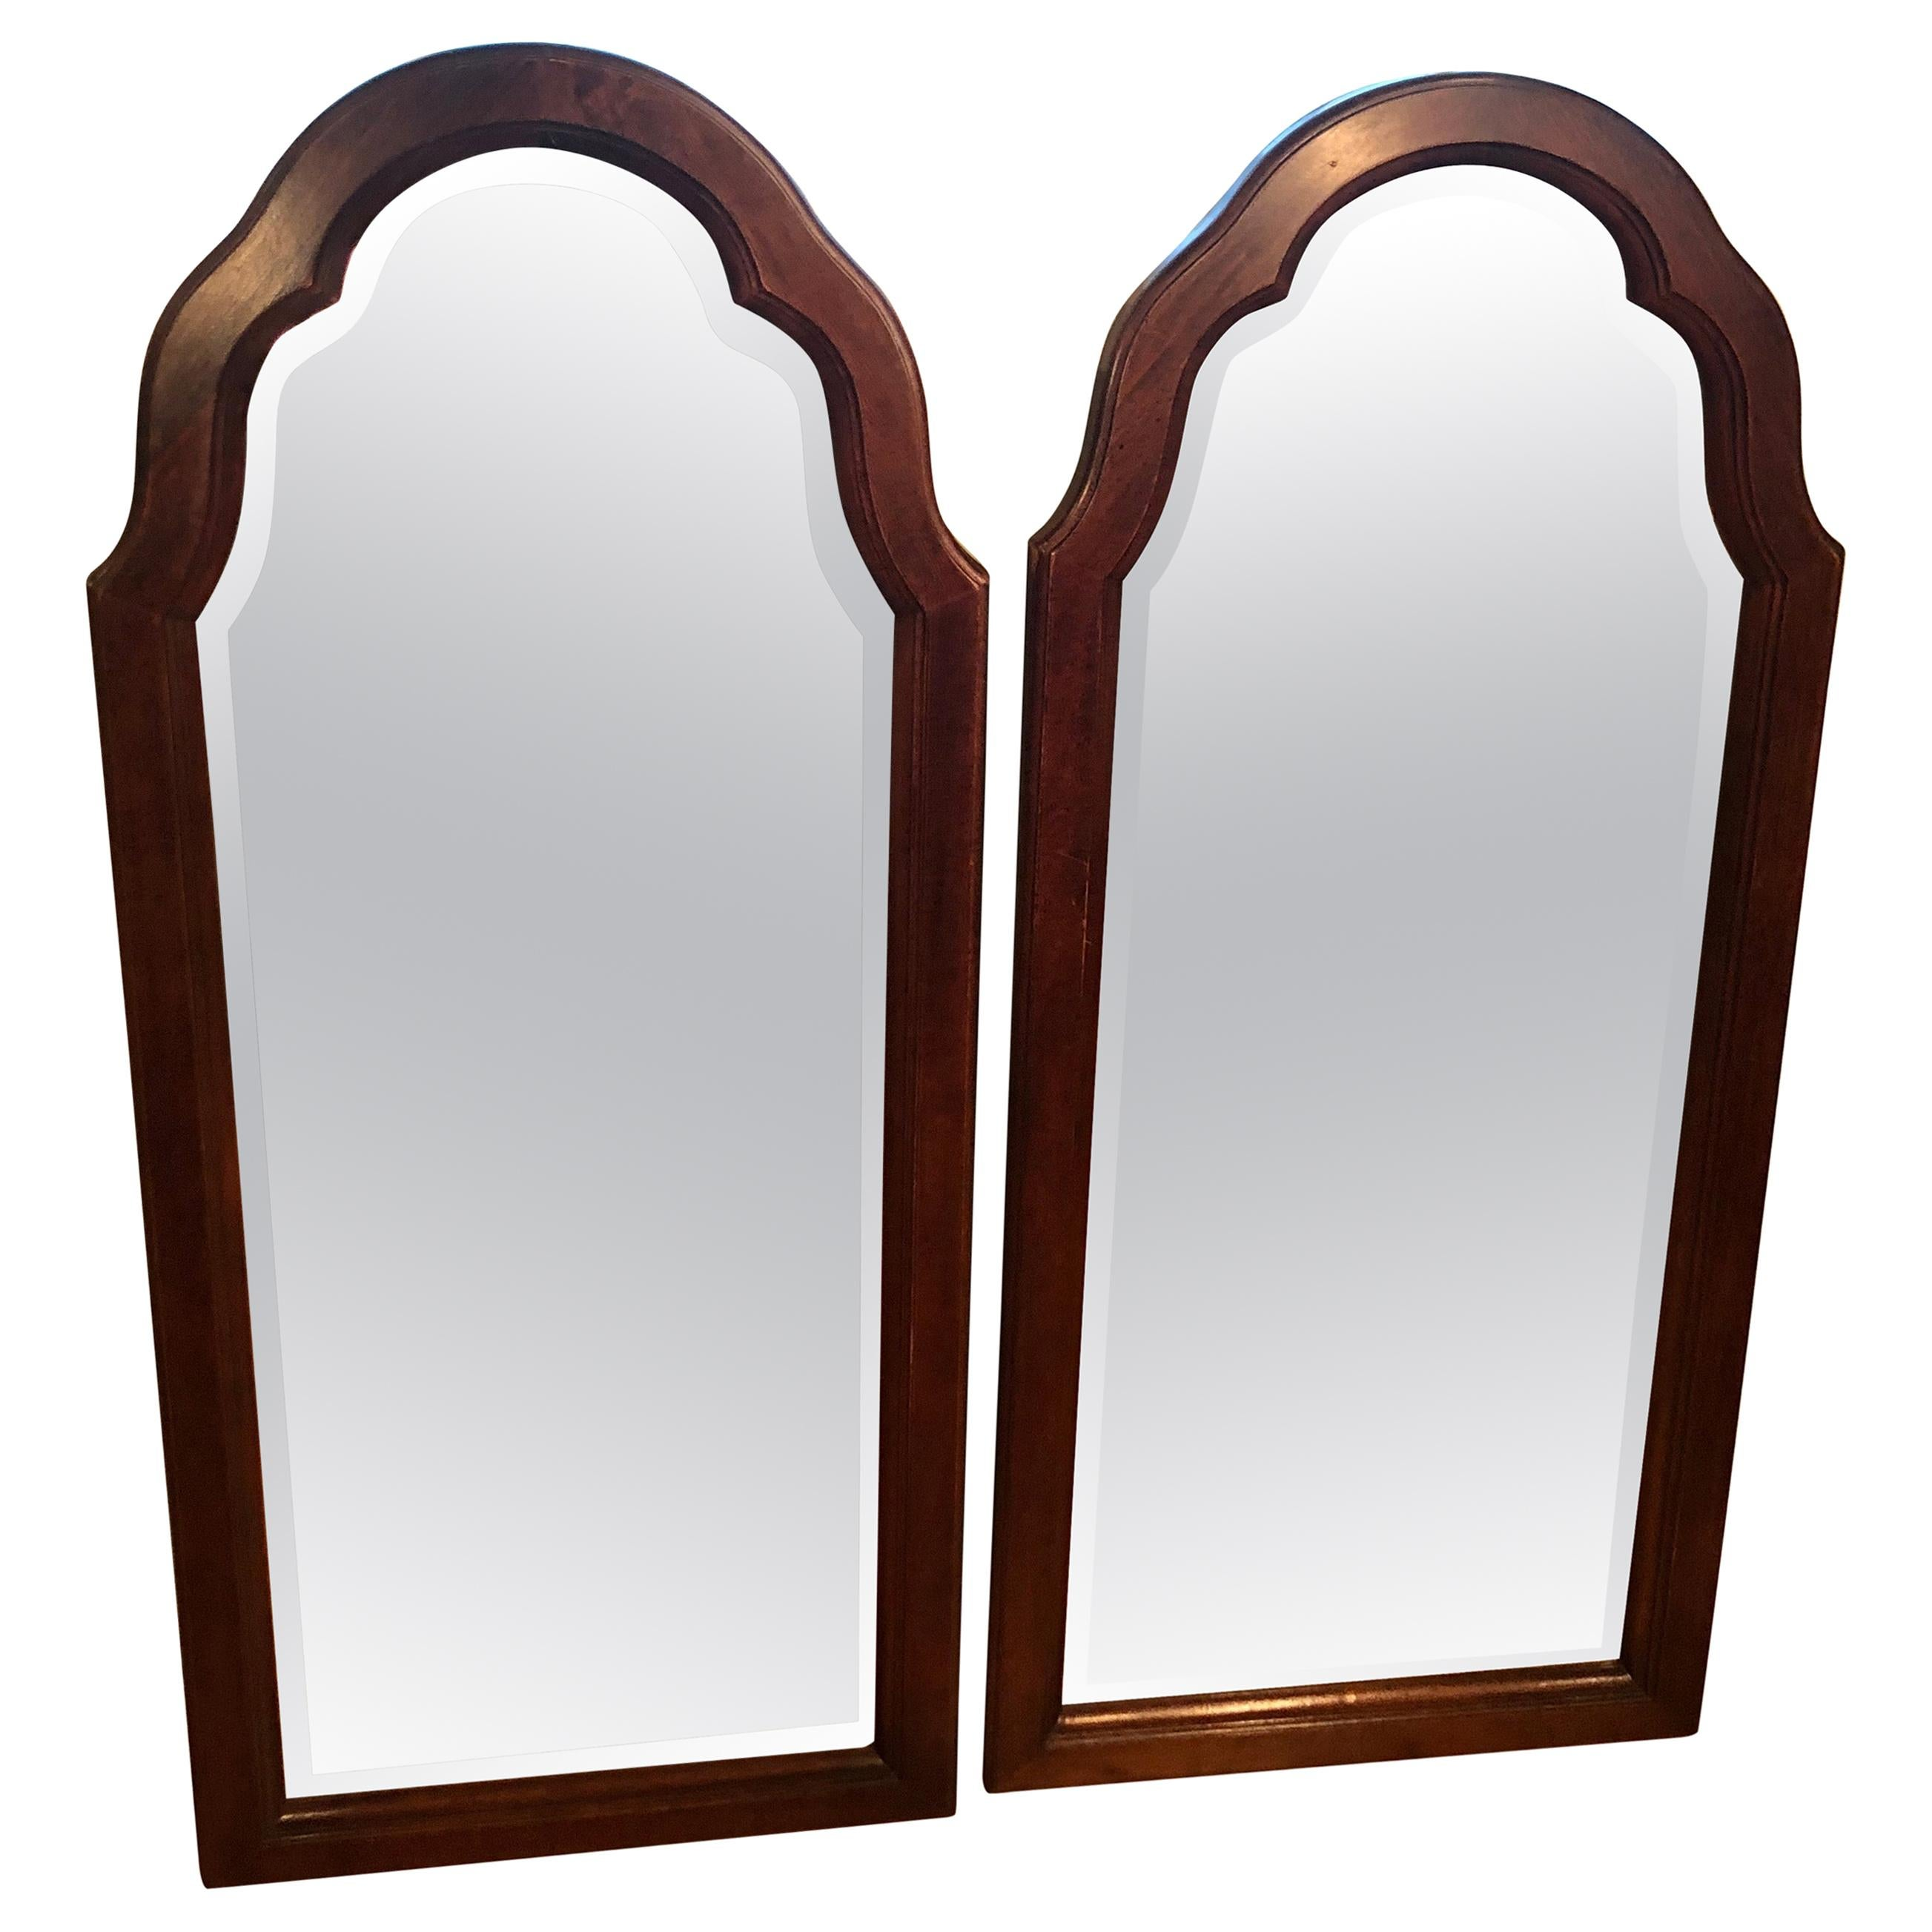 Pair of Beveled Arched Mirrors